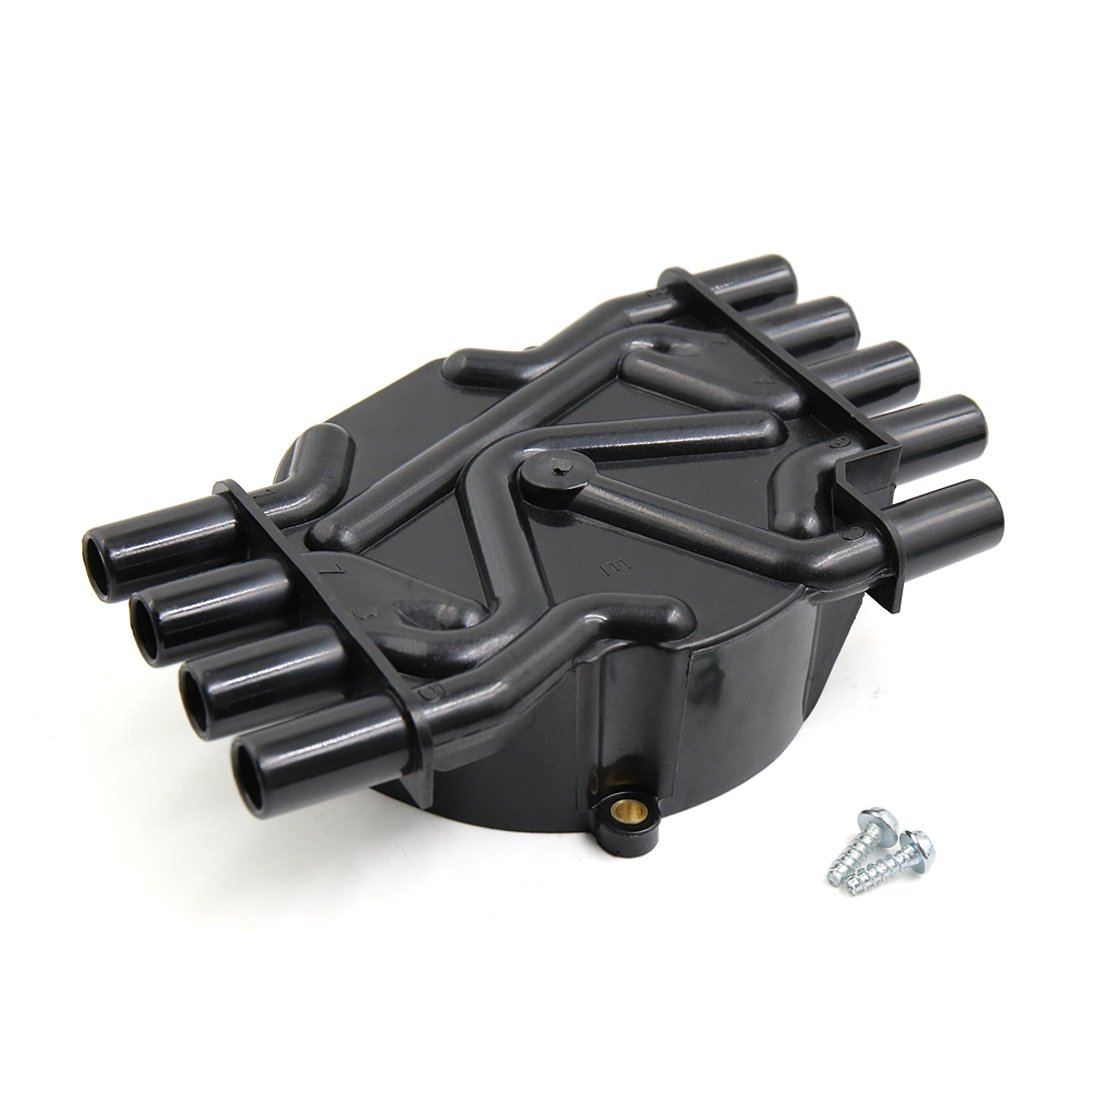 Uxcell a17051500ux1399 Black D329A Auto Car Ignition Distributor Cap for Chevrolet Avalanche Express Silverado Suburban C1500 C2500 8 Cylinder Engine